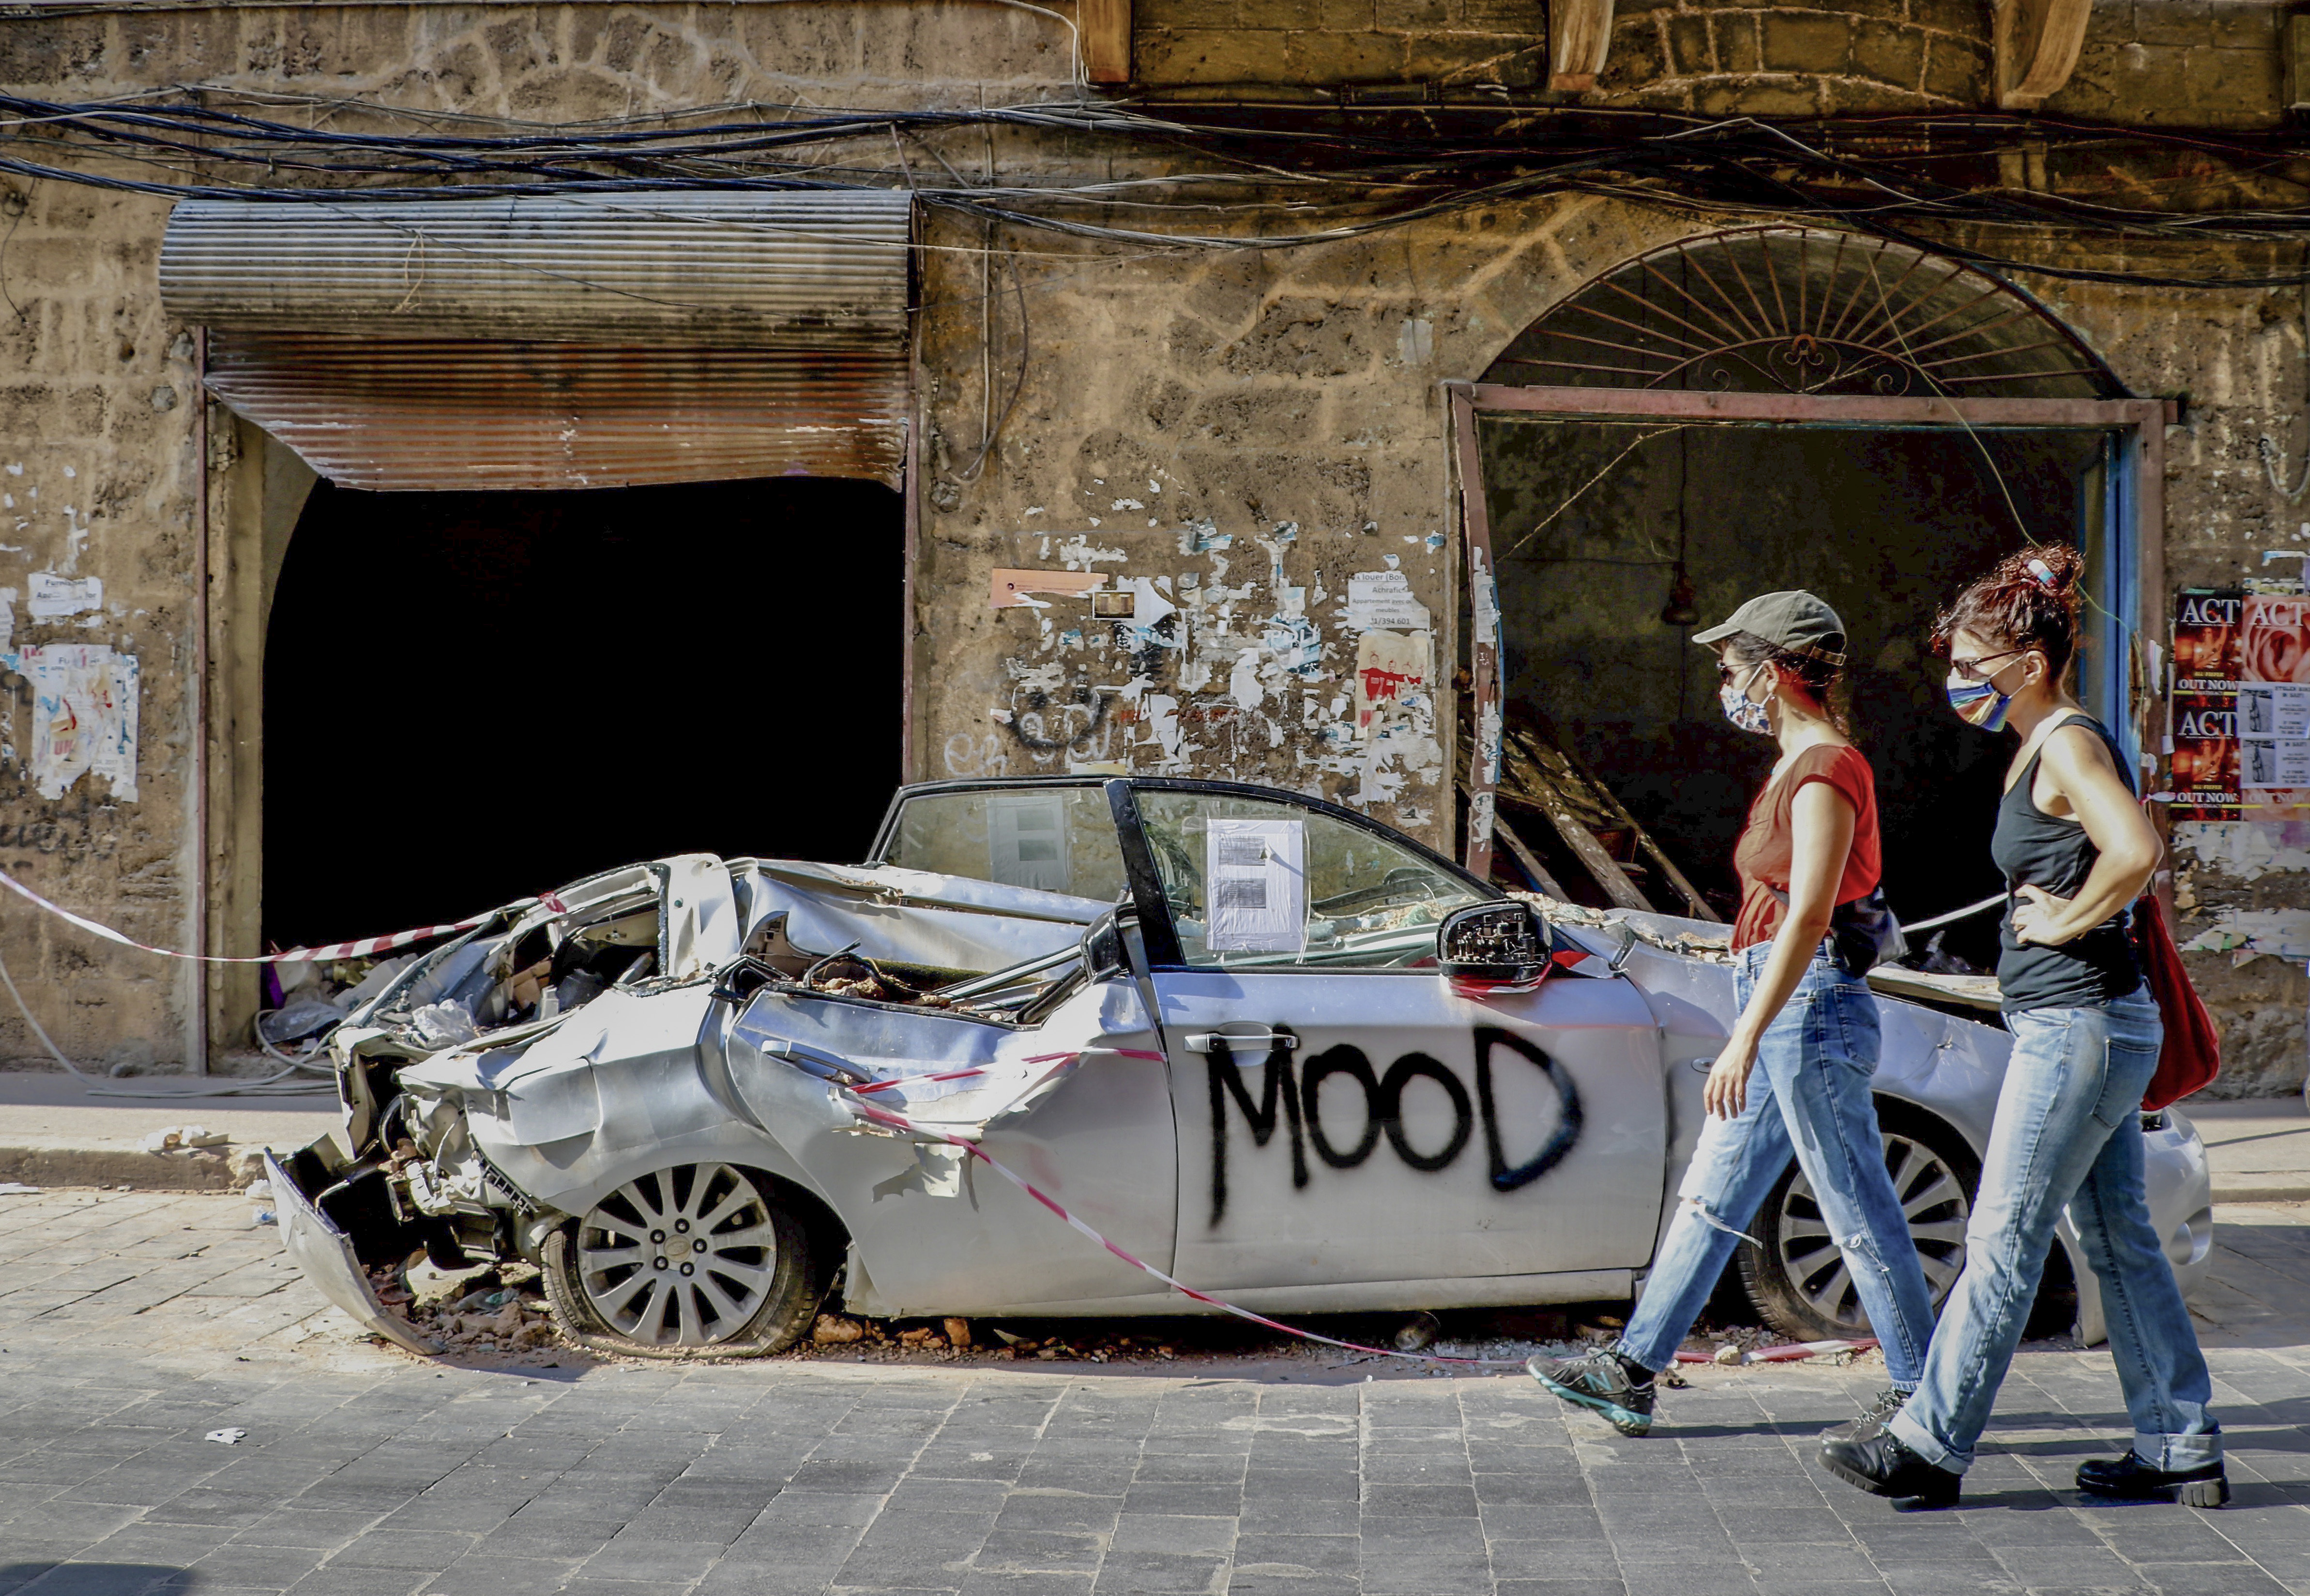 Women walk past a damaged car on August 13, a week-plus after the Port of Beirut explosions. Getty's suggested caption describes the streets of Beirut as